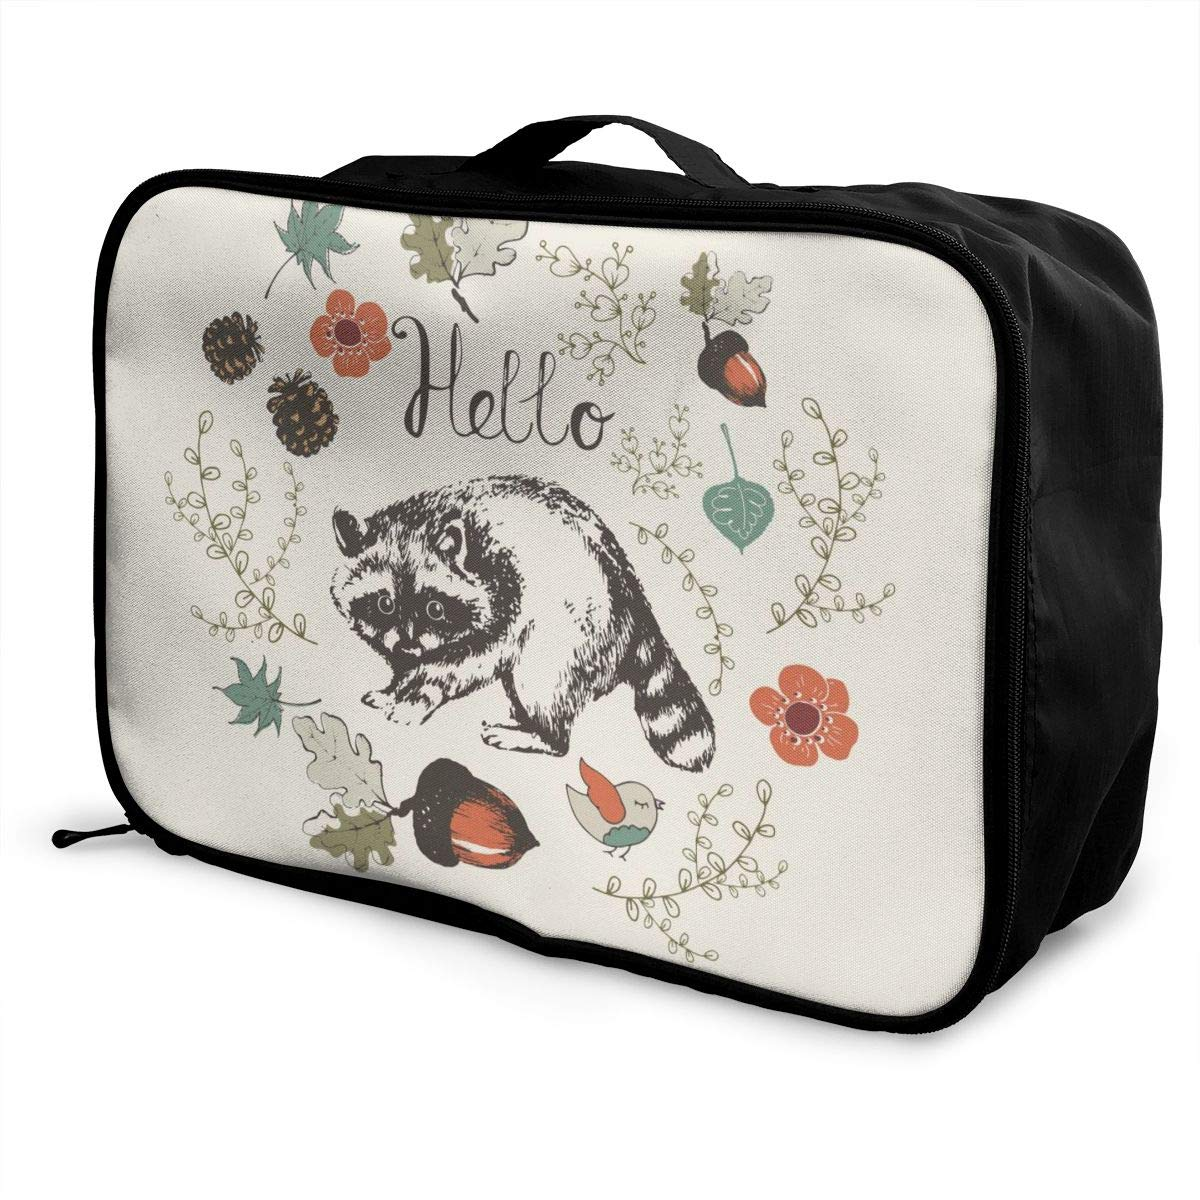 Hello Raccoon And Nuts Travel Lightweight Waterproof Folding Storage Portable Luggage Duffle Tote Bag Large Capacity In Trolley Handle Bags 6x11x15 Inch